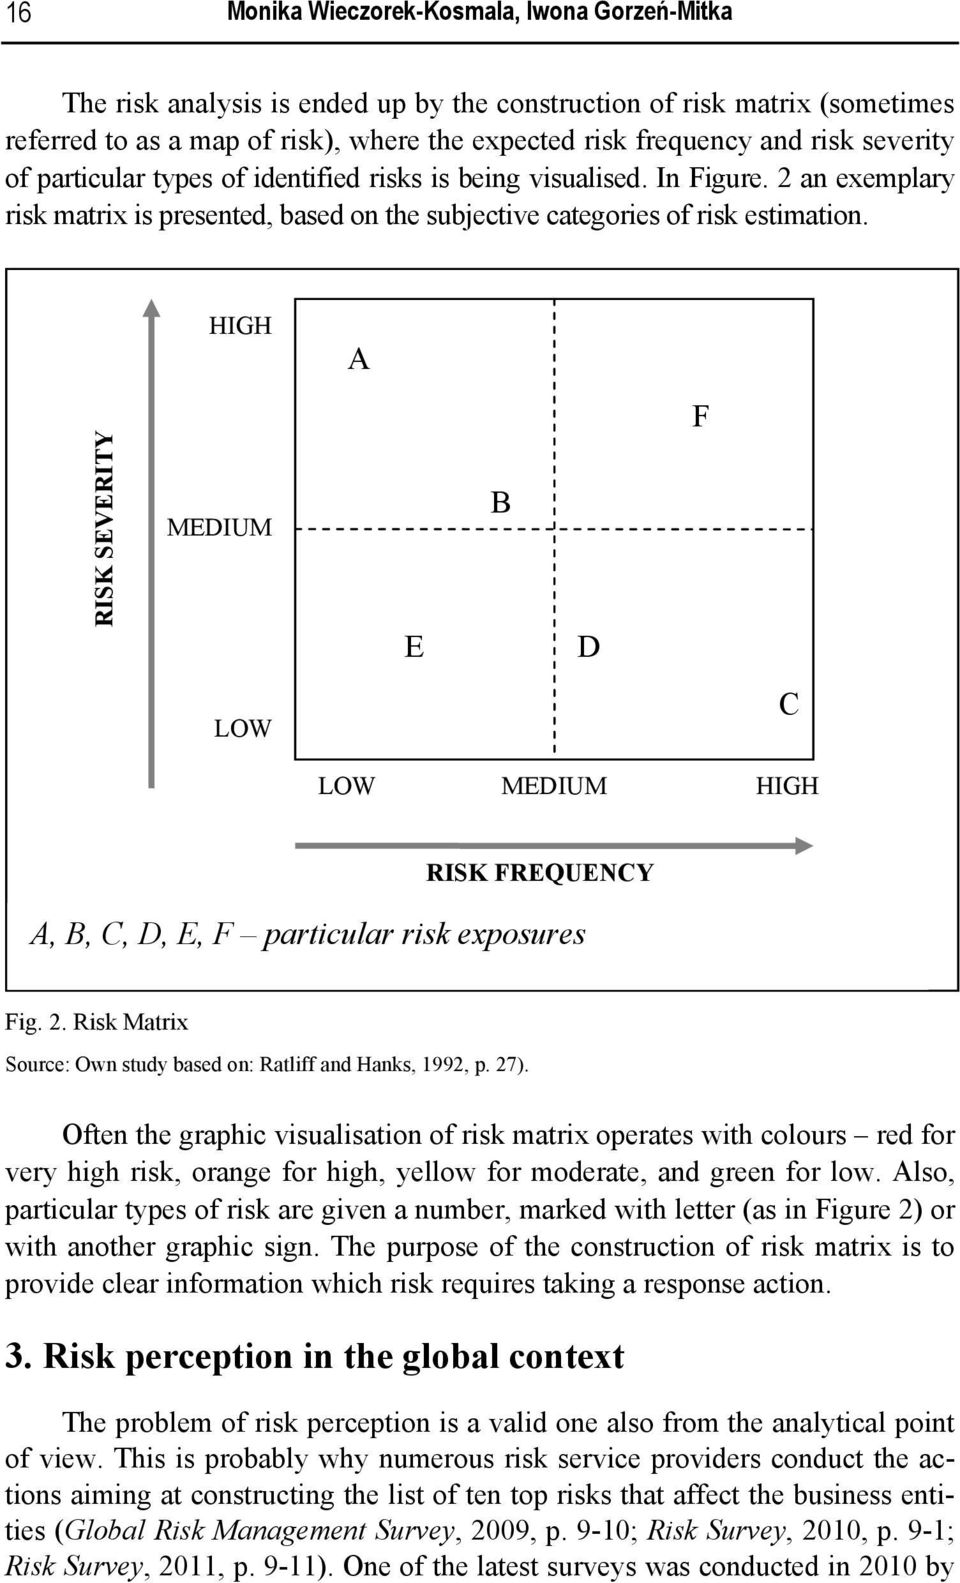 HIGH A F RISK SEVERITY MEDIUM E B D LOW C LOW MEDIUM HIGH RISK FREQUENCY A, B, C, D, E, F particular risk exposures Fig. 2. Risk Matrix Source: Own study based on: Ratliff and Hanks, 1992, p. 27).